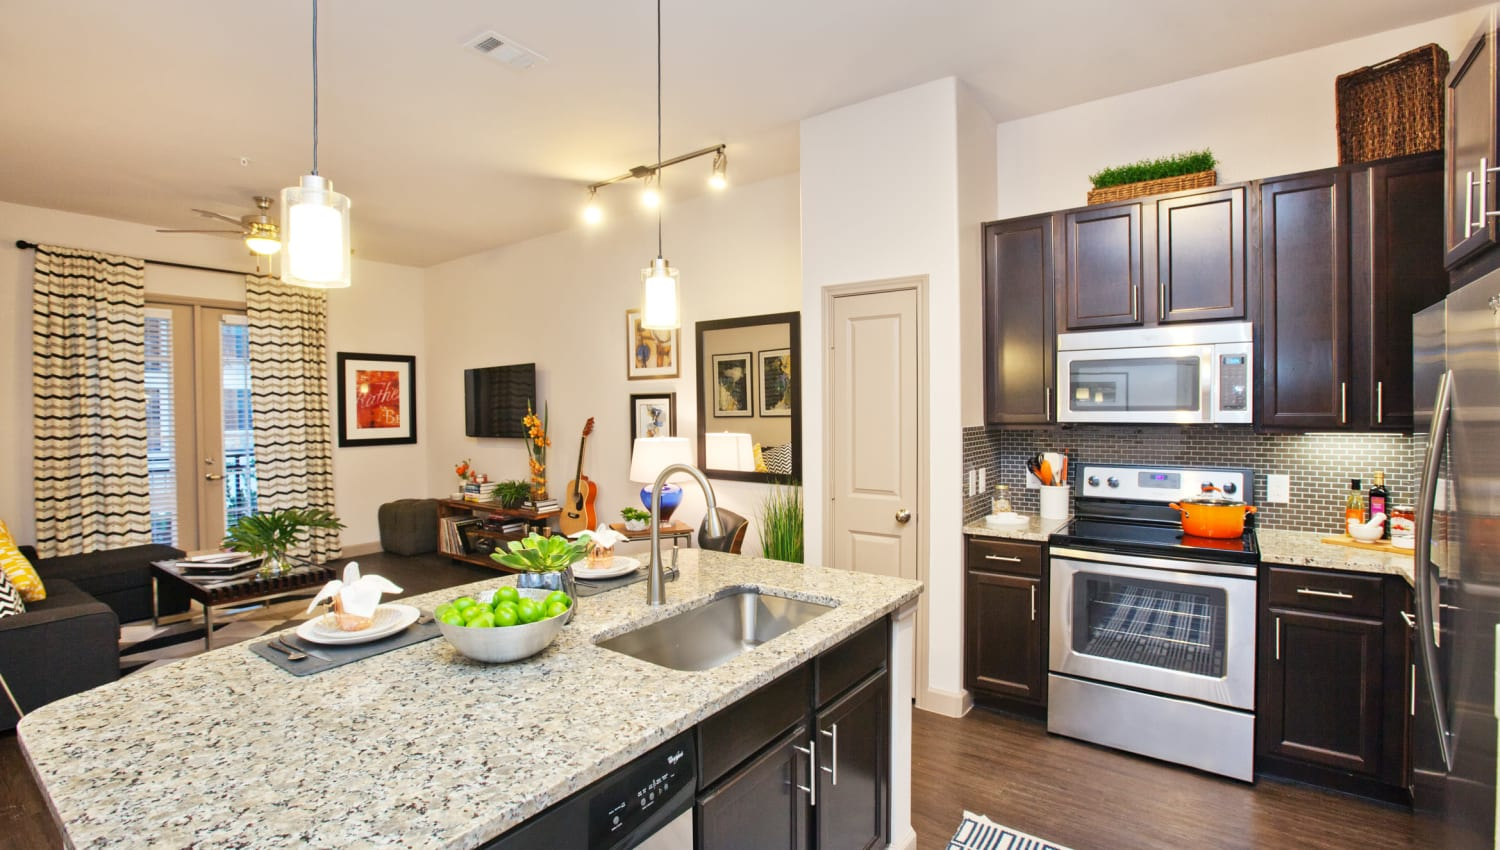 Kitchen island and stainless-steel appliances at Olympus Auburn Lakes in Spring, Texas